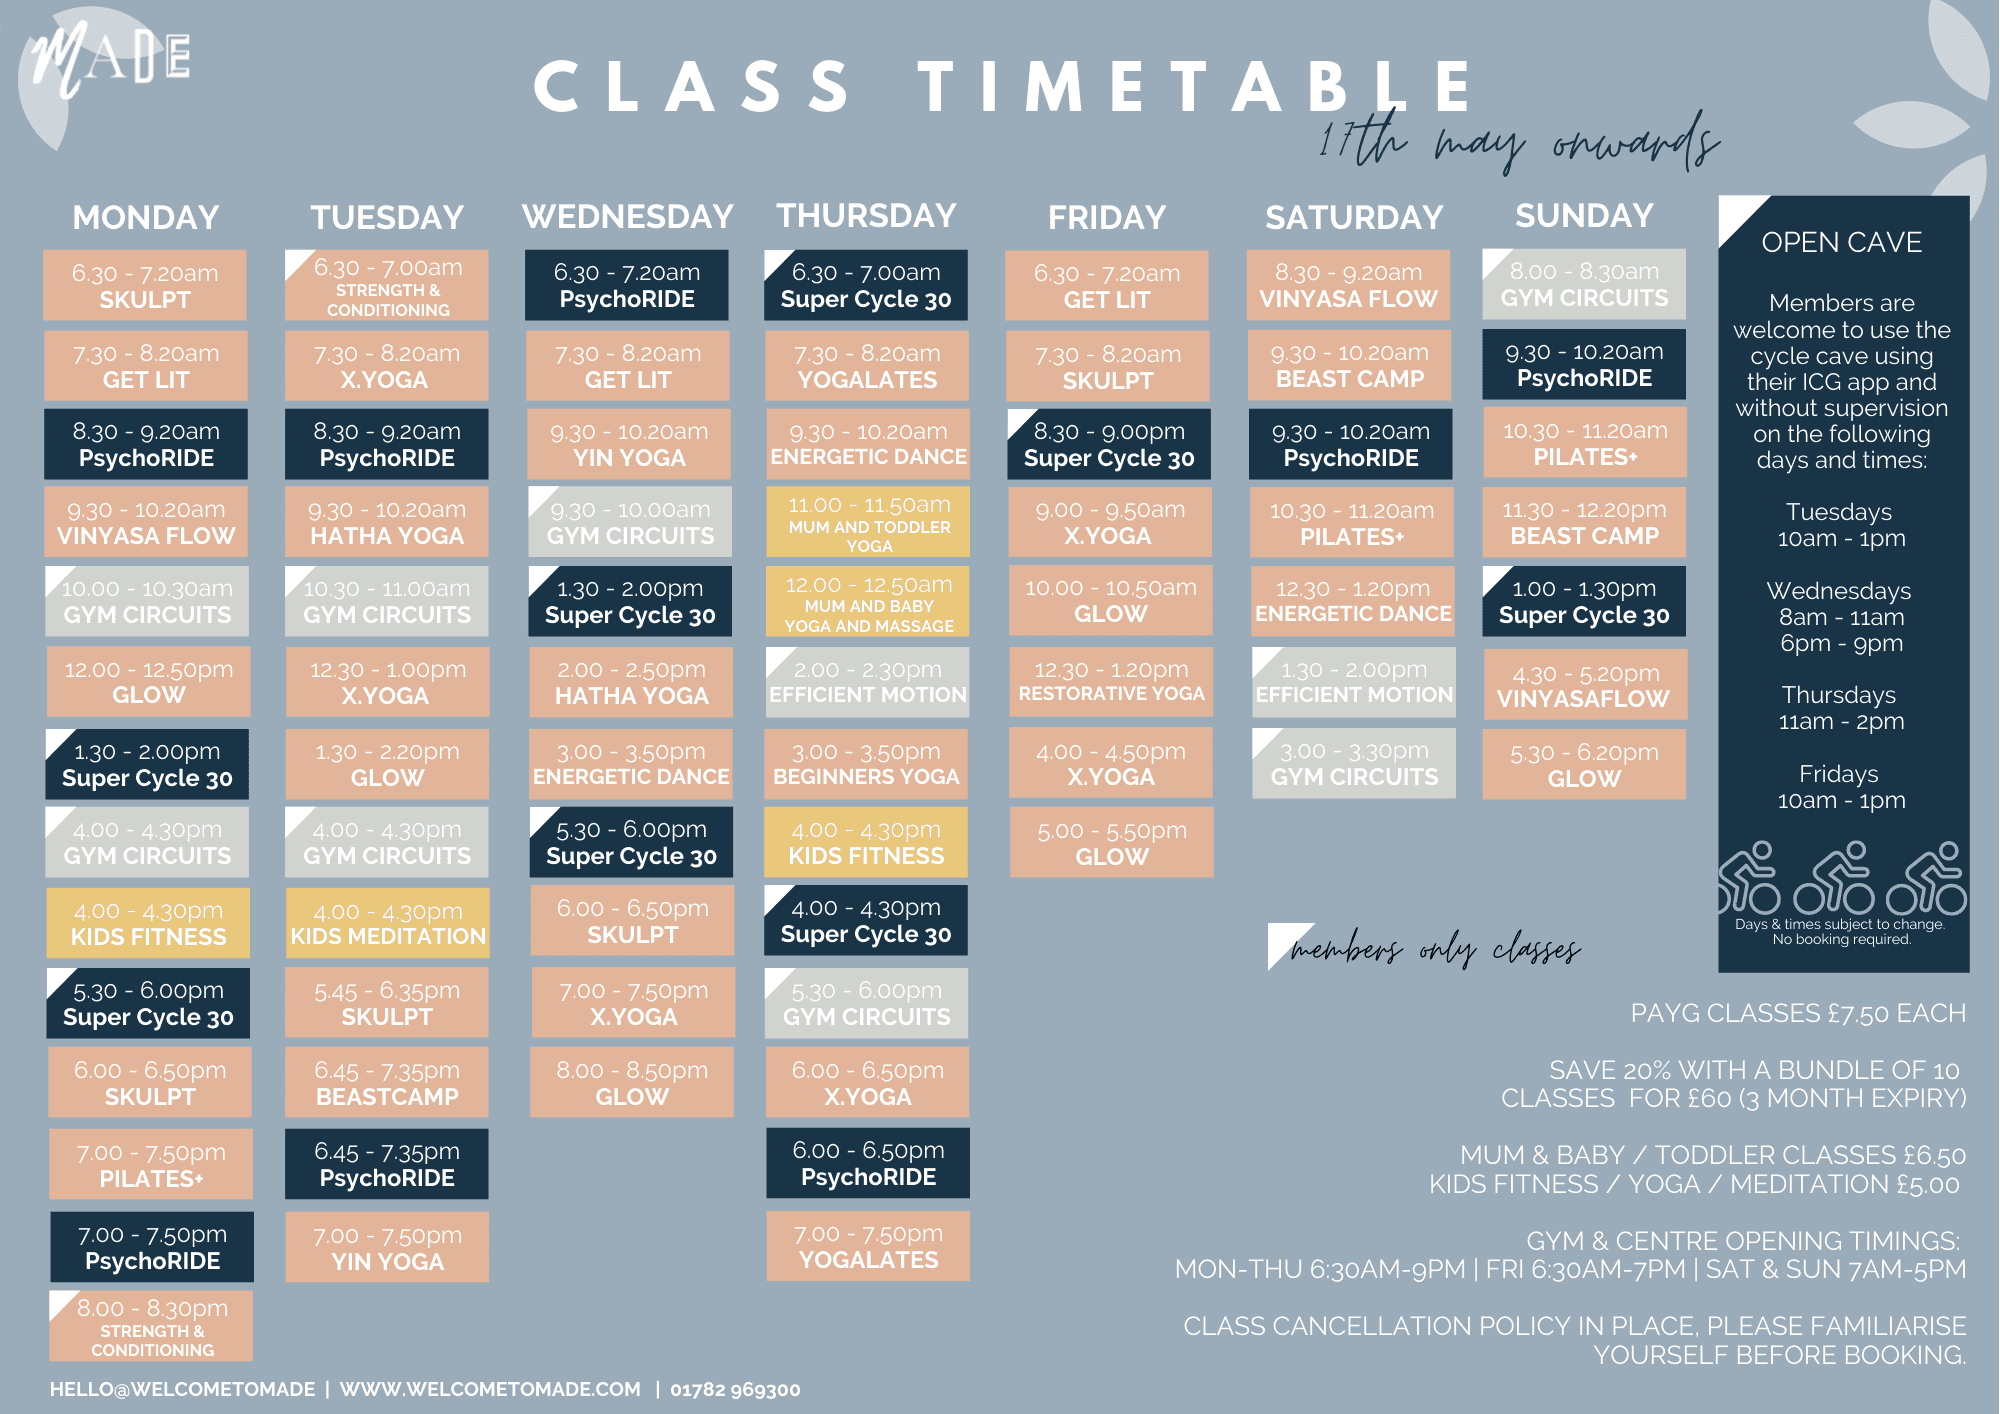 MADE HQ CLASSES TIMETABLE